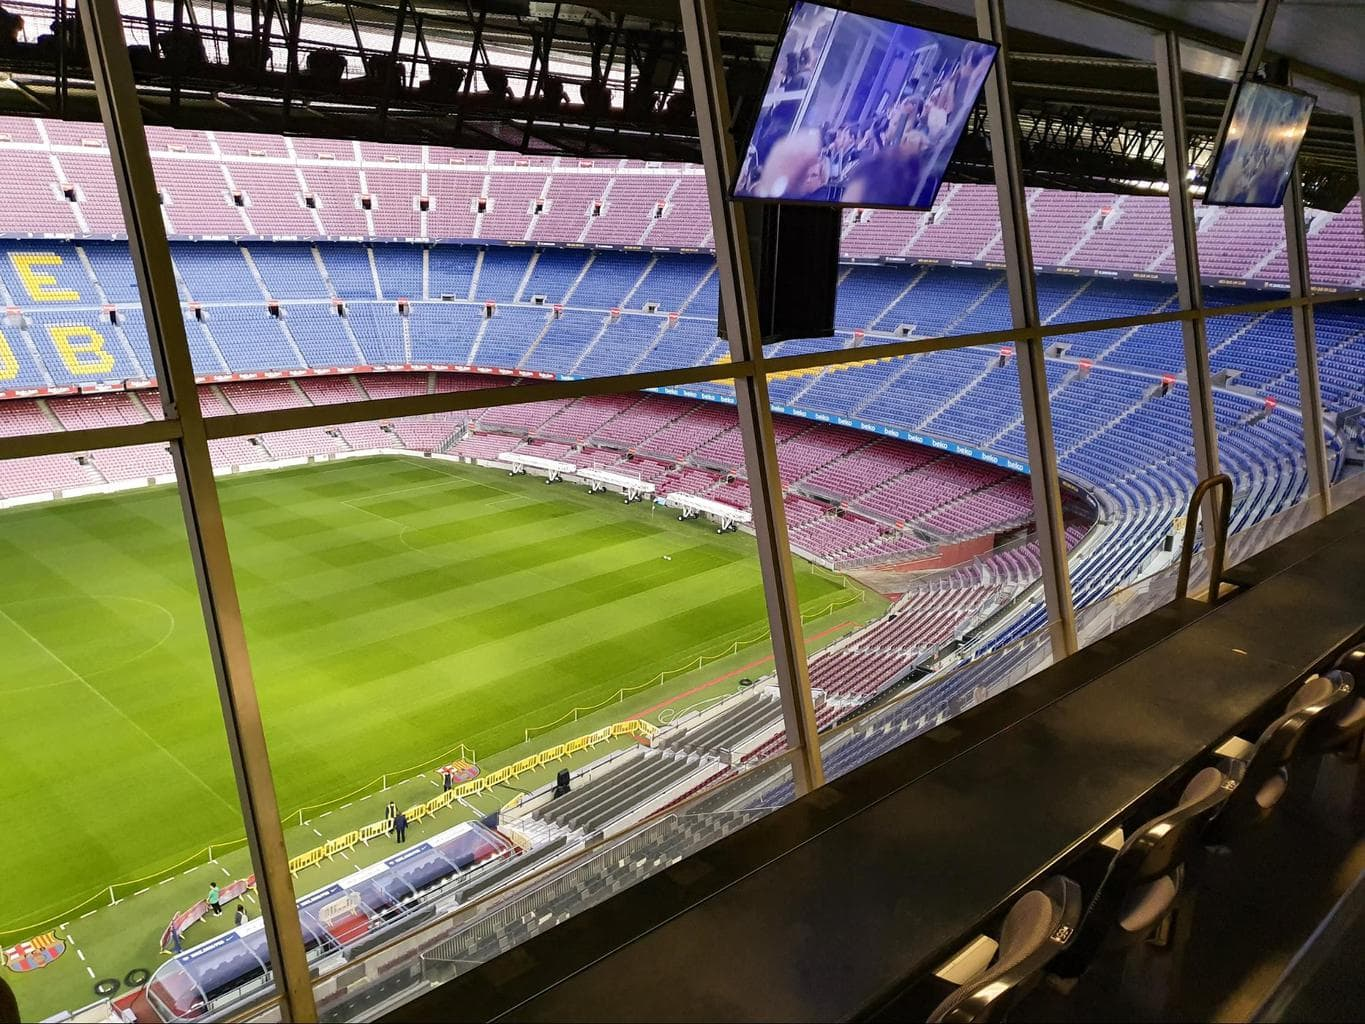 Camp Nou stadium seen from the media box